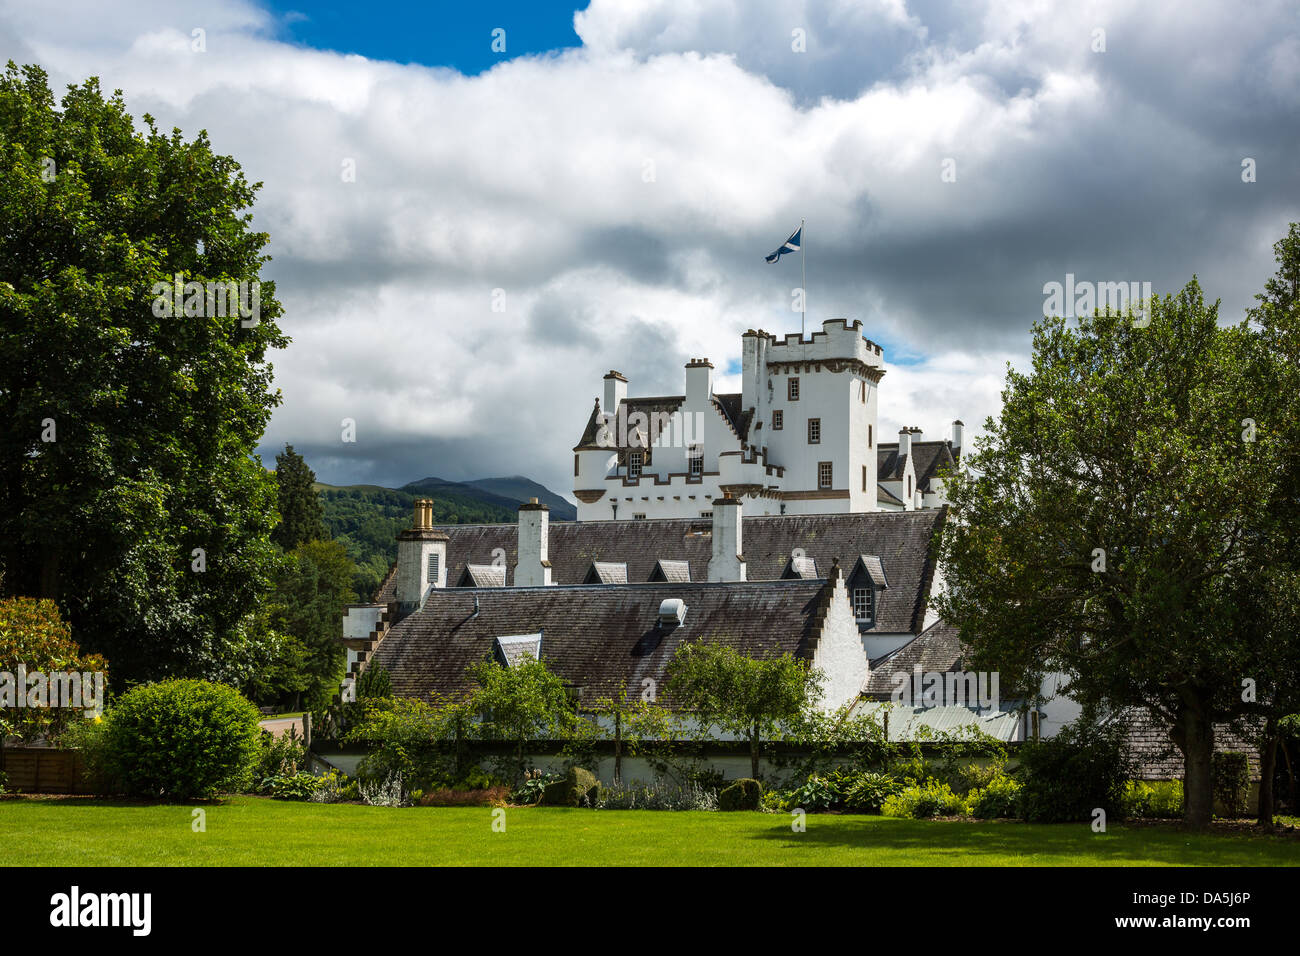 Europe Great Britain, Scotland, Perthshire, Blair Atholl, the Blair castle, home of the Duke of Athool, seen from - Stock Image